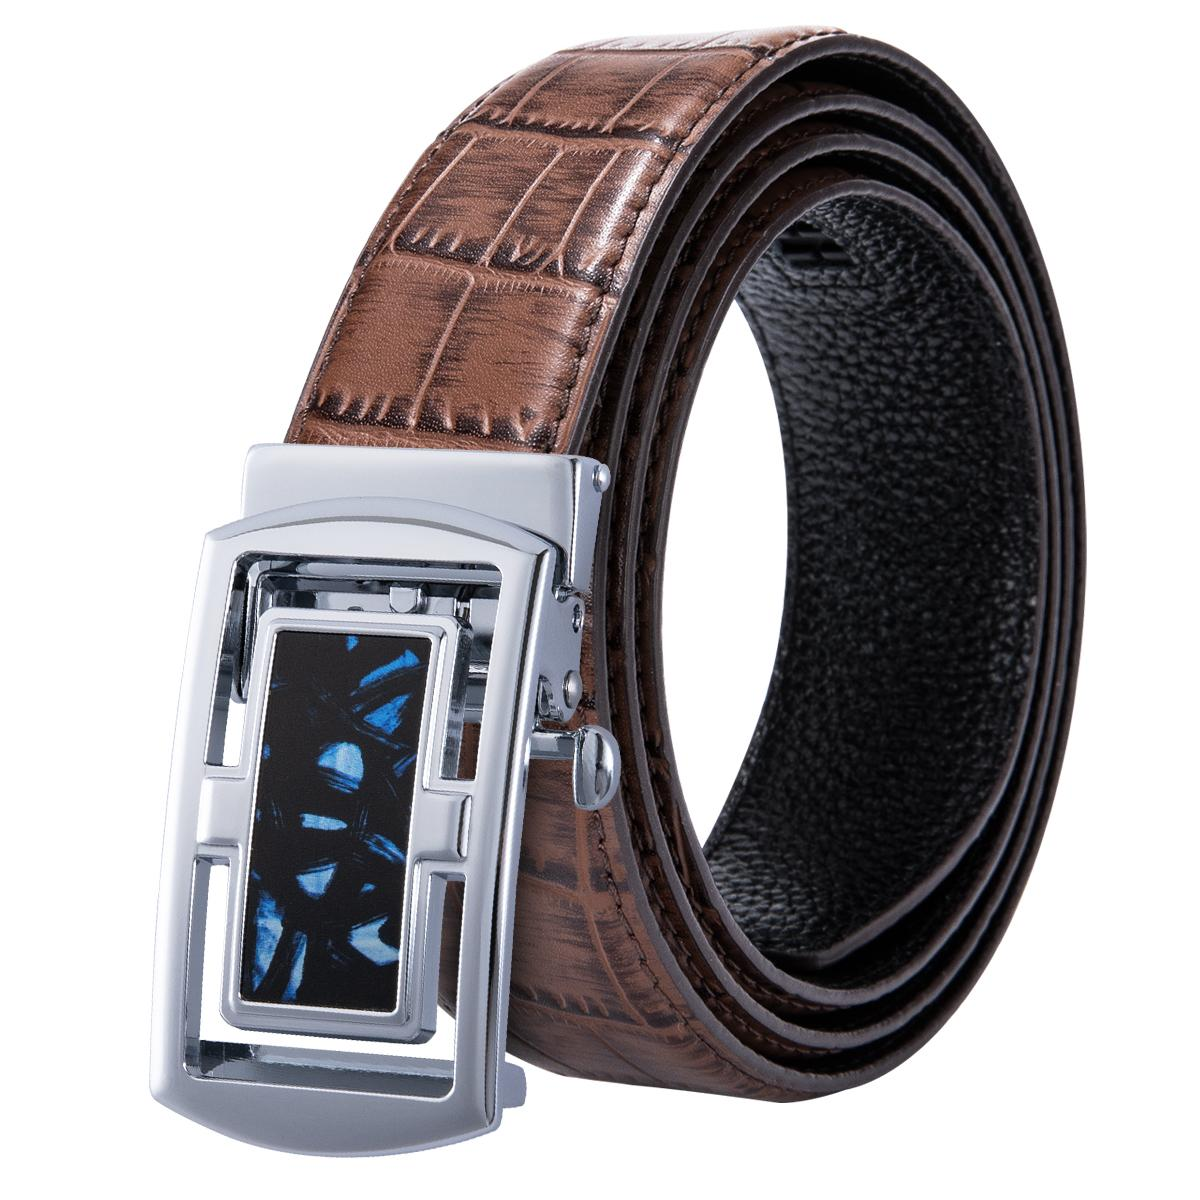 74734831f68 Hi-Tie Cowhide Genuine Leather Belt for Men Strap Male Fashion ...